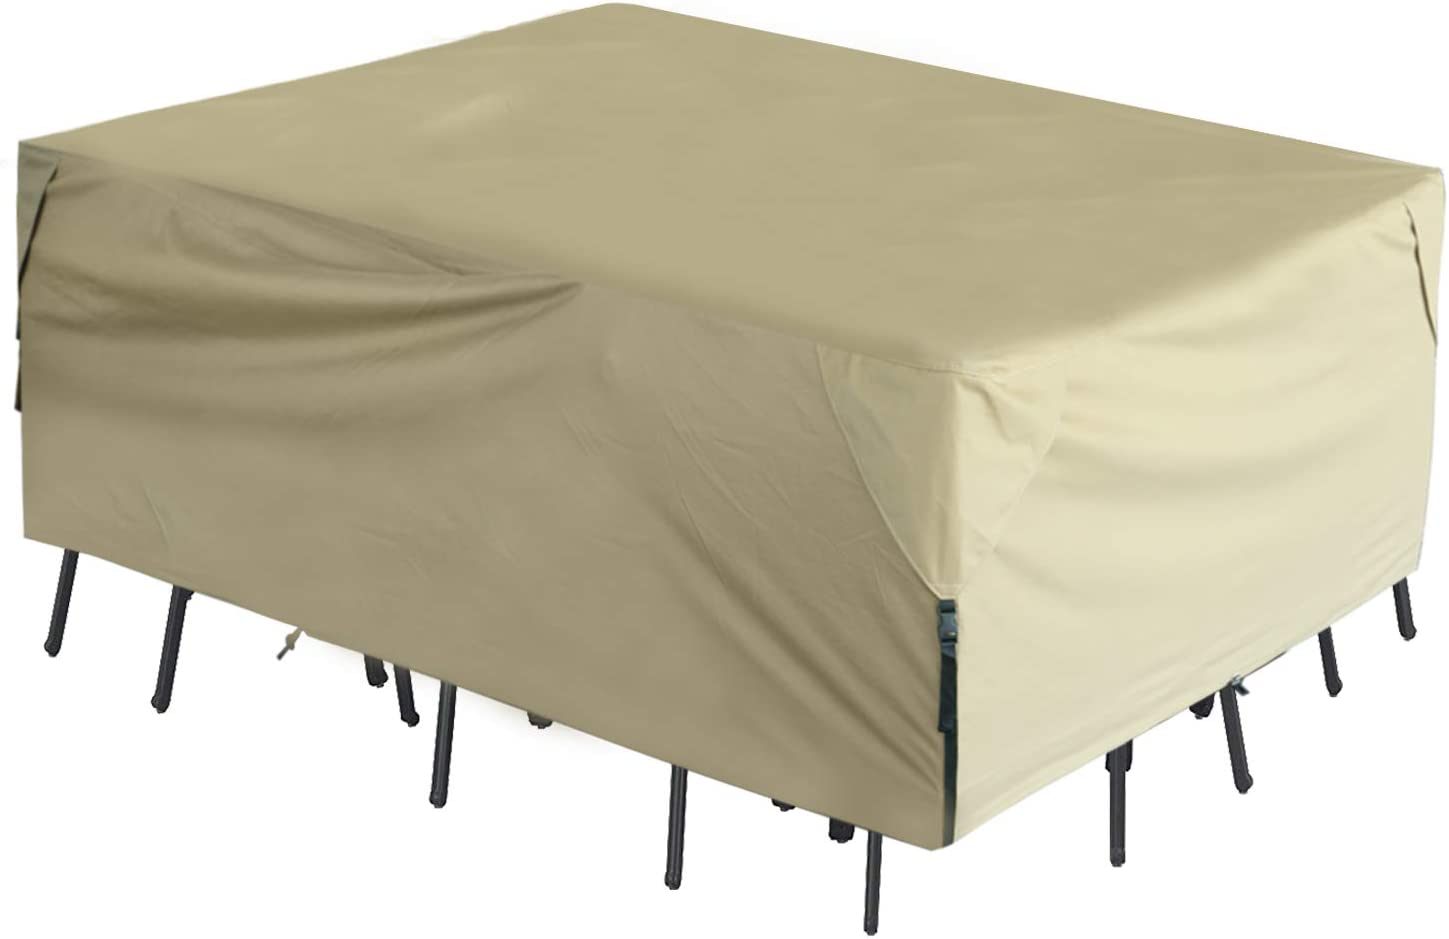 Leader Accessories 600D PVC Tough Canvas 100% Waterproof Square/Round Patio Table & Chair Set Cover (96